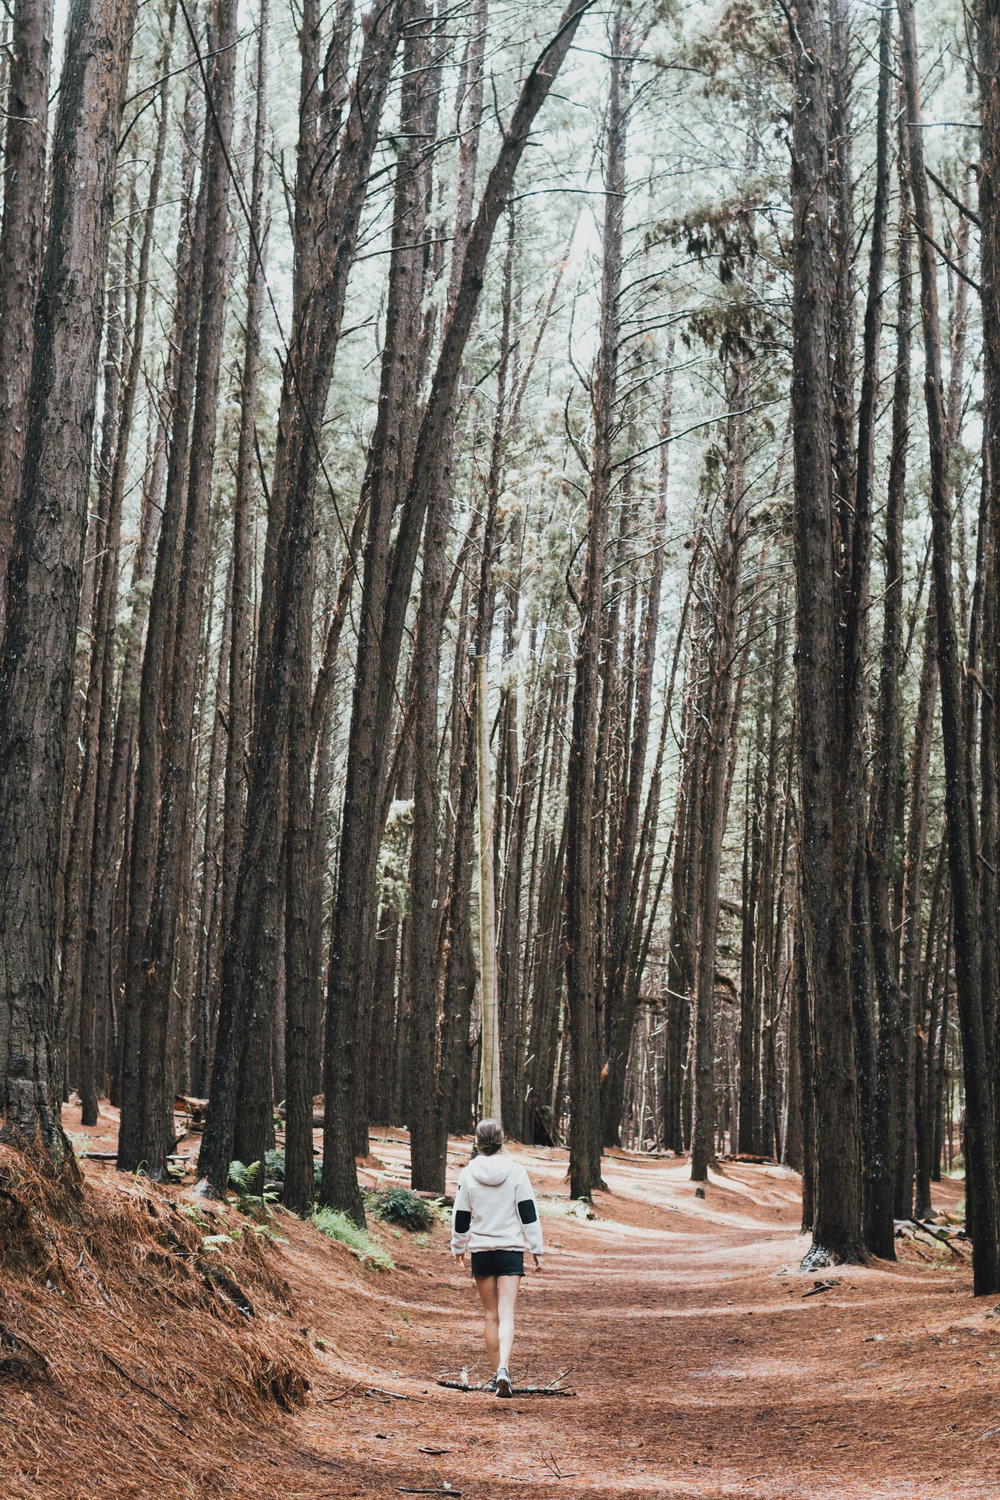 waihou-spring-forest-reserve-photo-by-samantha-look.jpg